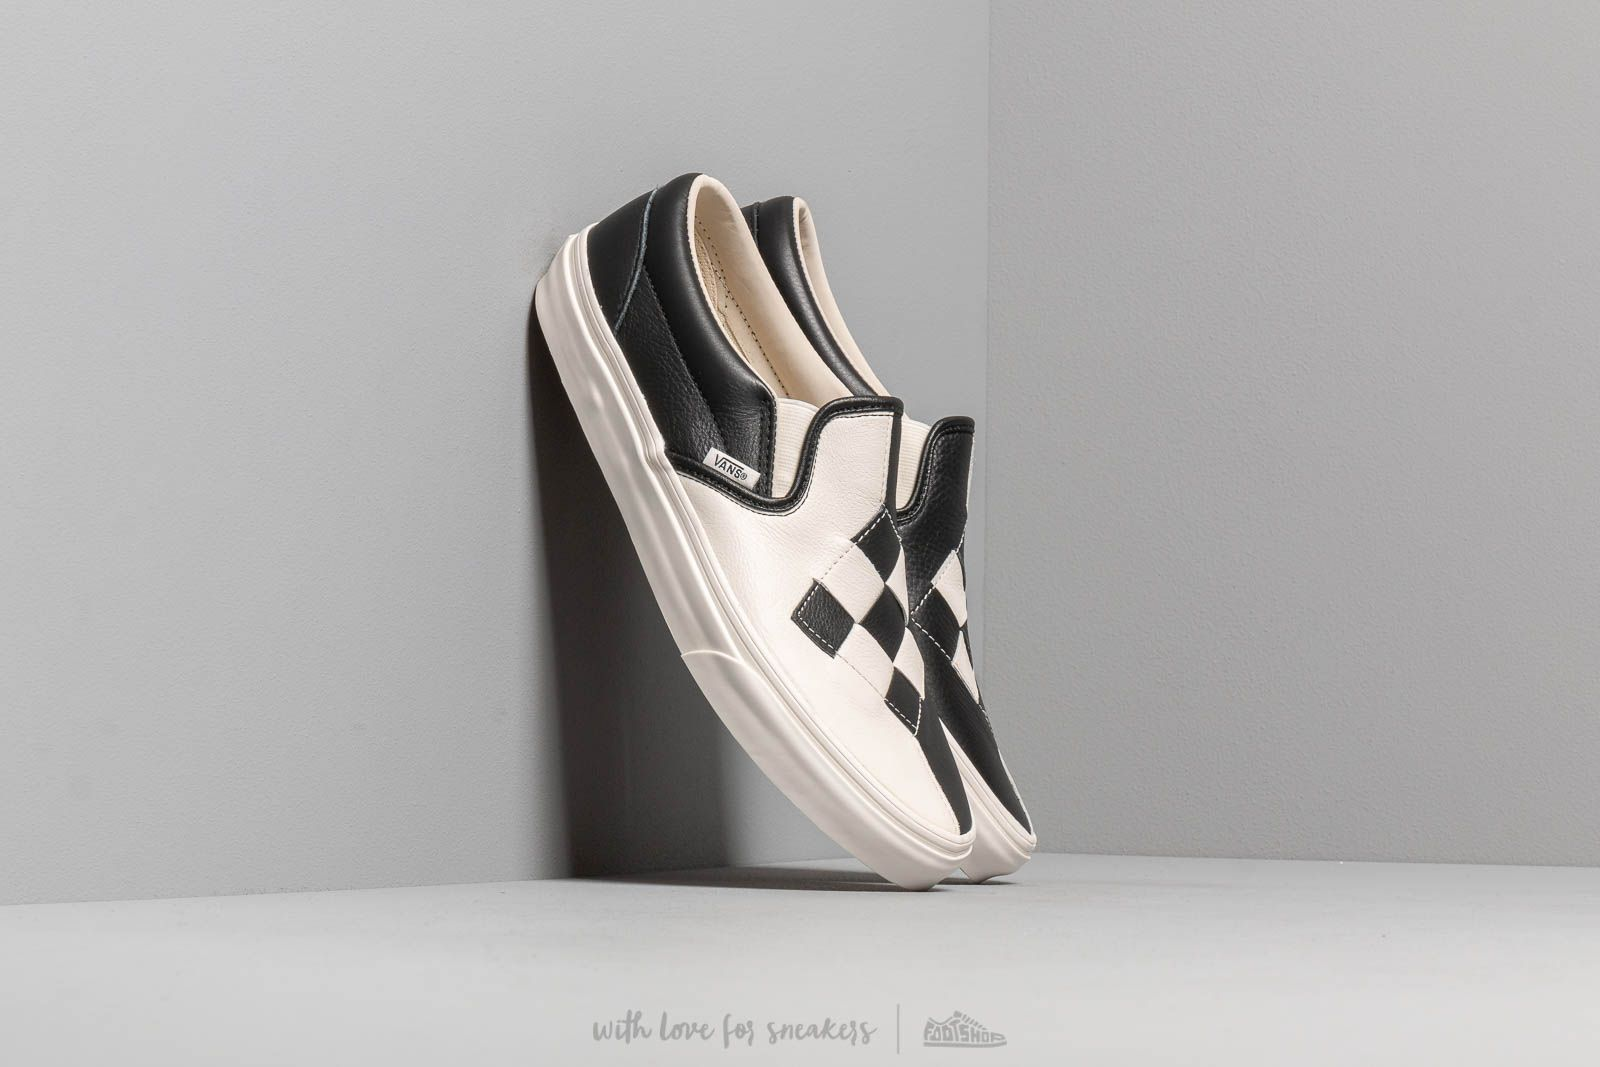 Scarpe e sneaker da uomo Vans Classic Slip-On (Woven Leather) Checkerboard